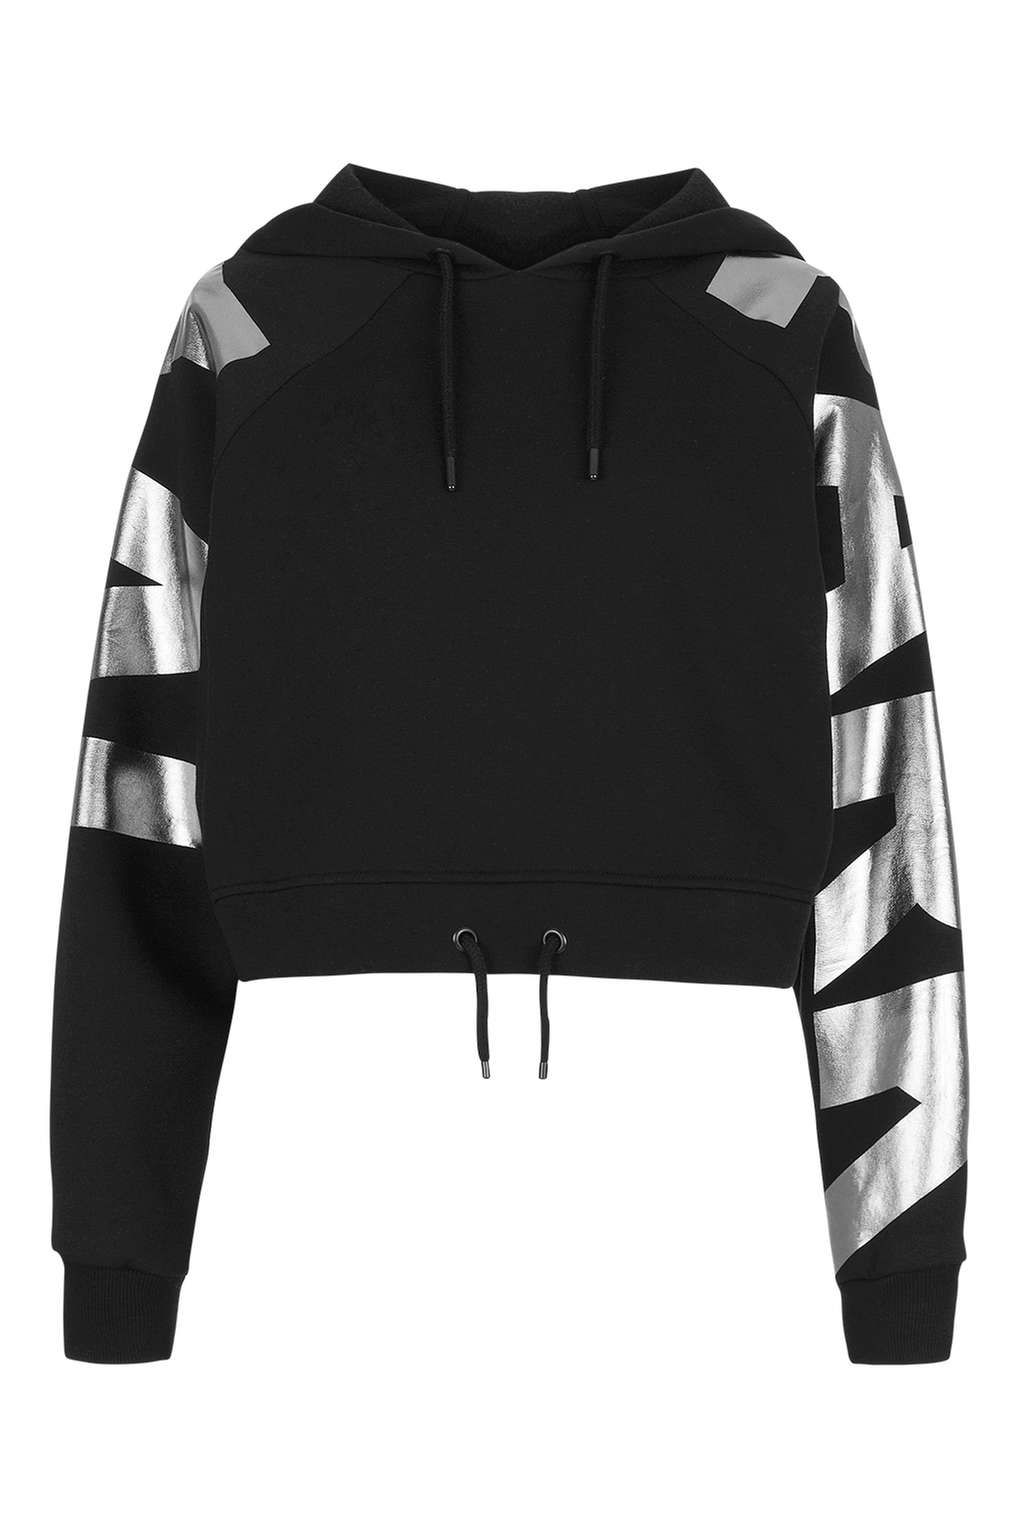 Logo Sleeve Cropped Hoodie by Ivy Park - Tops - Clothing | Ivy ...